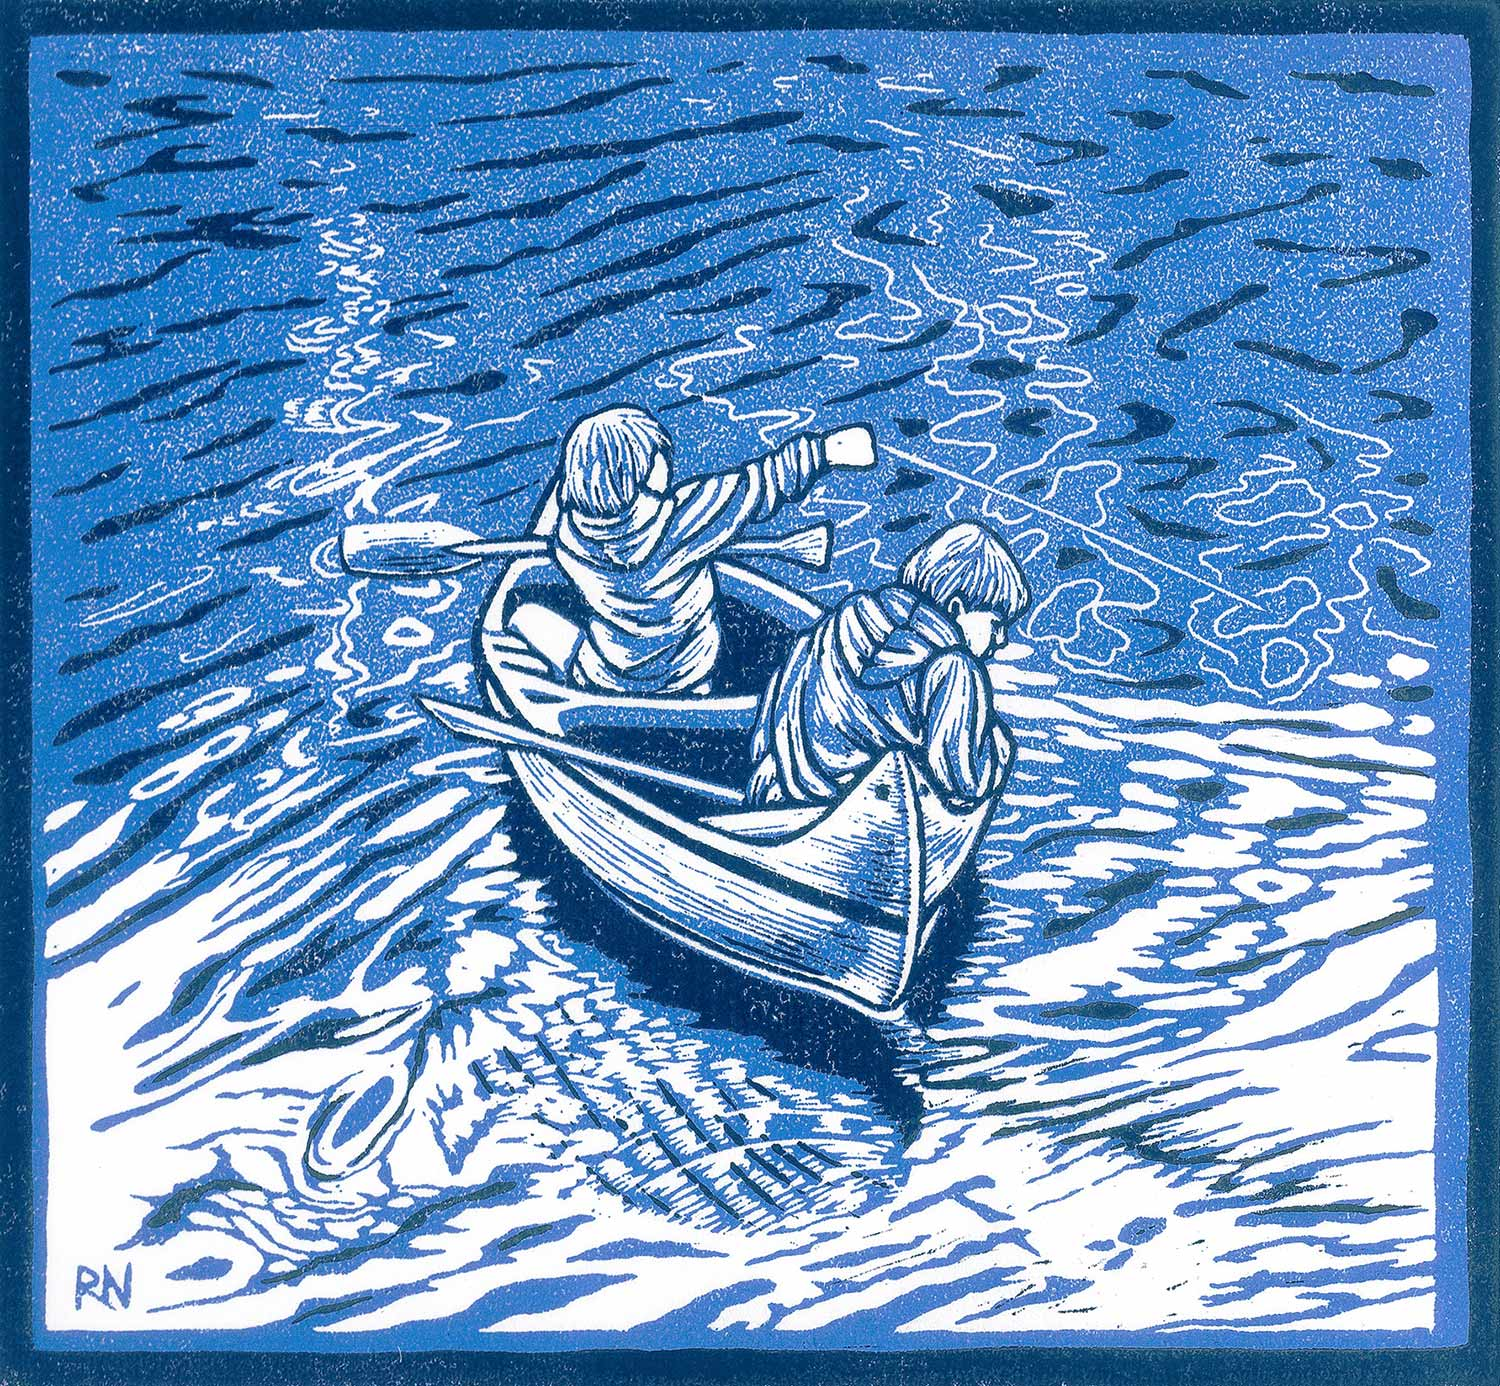 WAITING FOR FISH  26 X 28.5 CM, EDITION OF 50  pigment print of a REduction linocut ON JAPANESE PAPER  $750